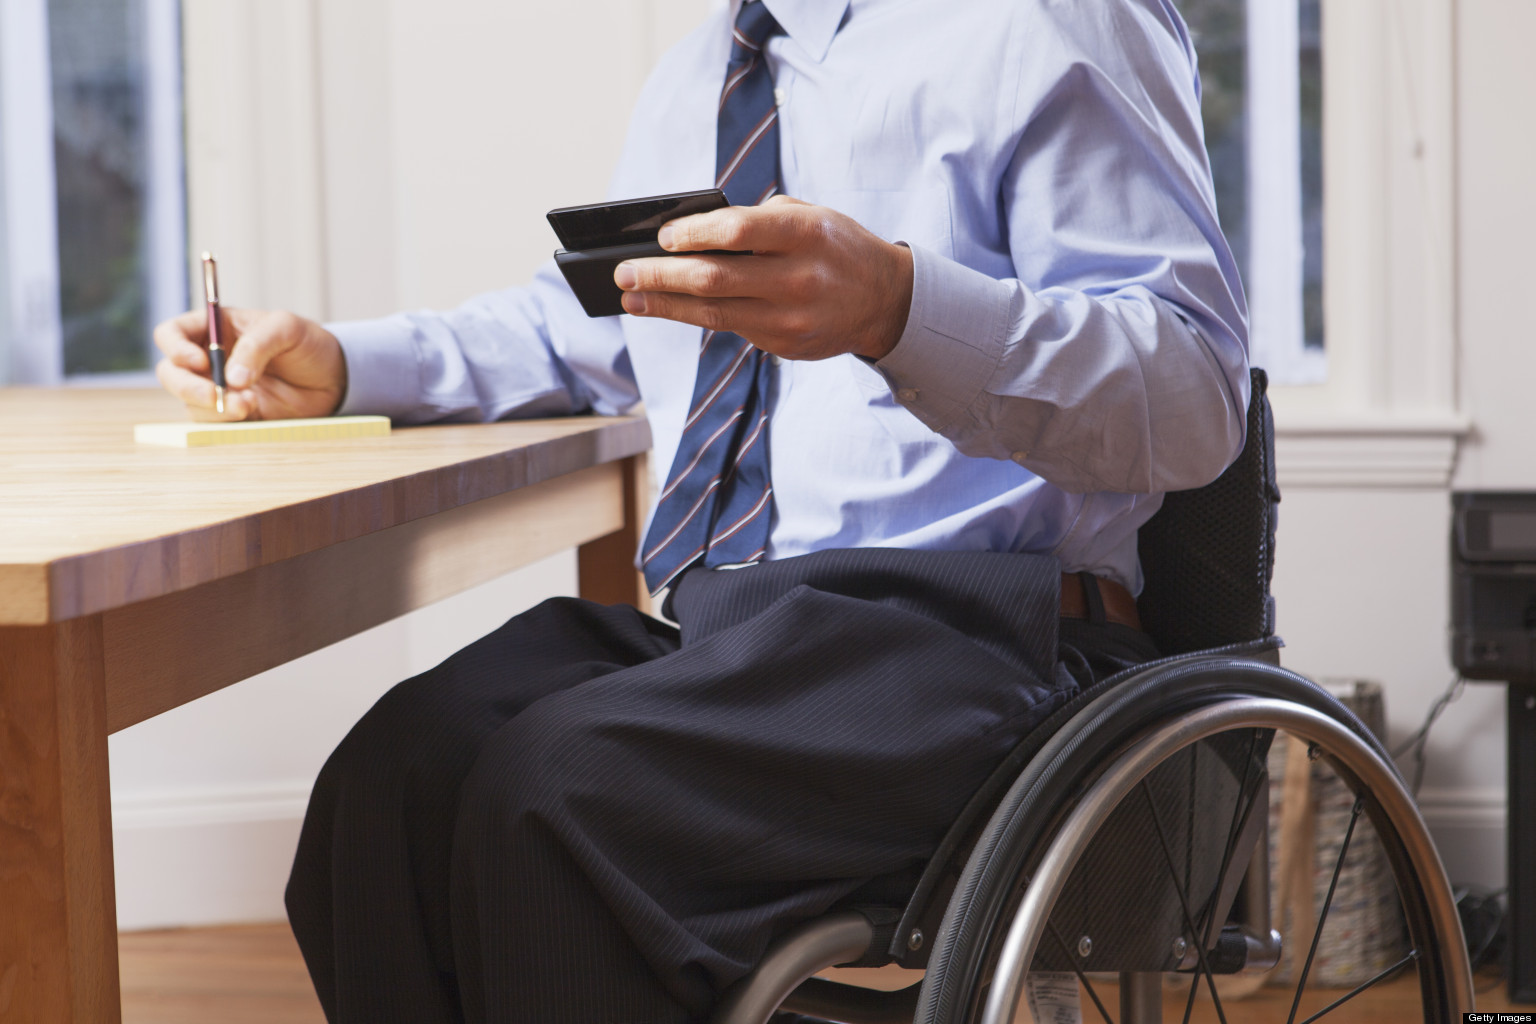 Permalink to: Disability Rights at Workplace